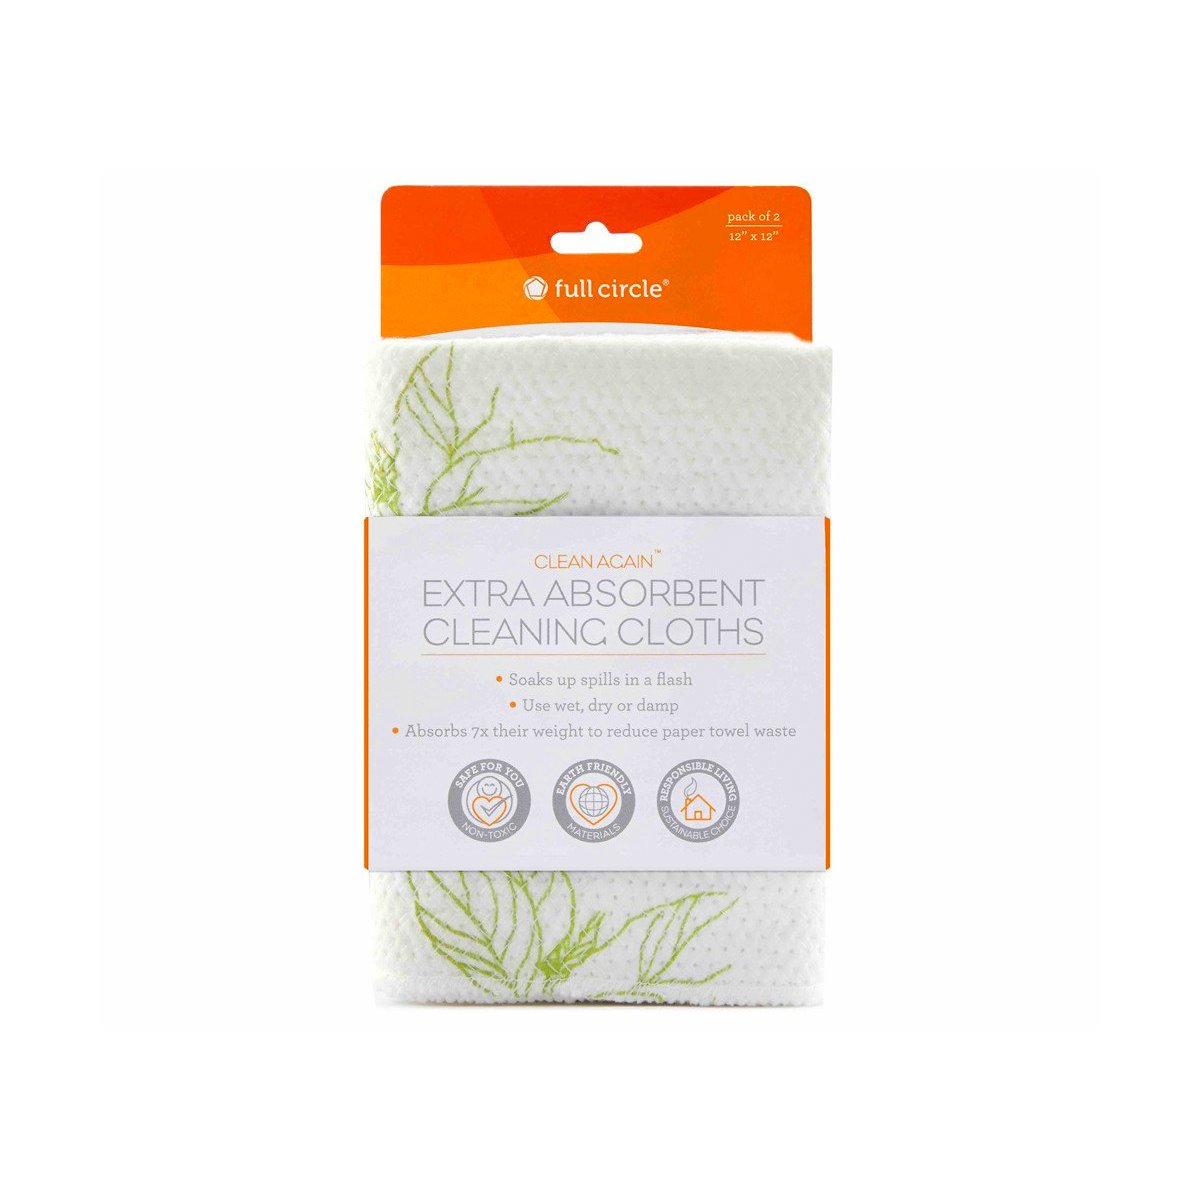 Full Circle Clean Again Super Absorbent Cloth Full Circle Household Cleaning Supplies at Little Earth Nest Eco Shop